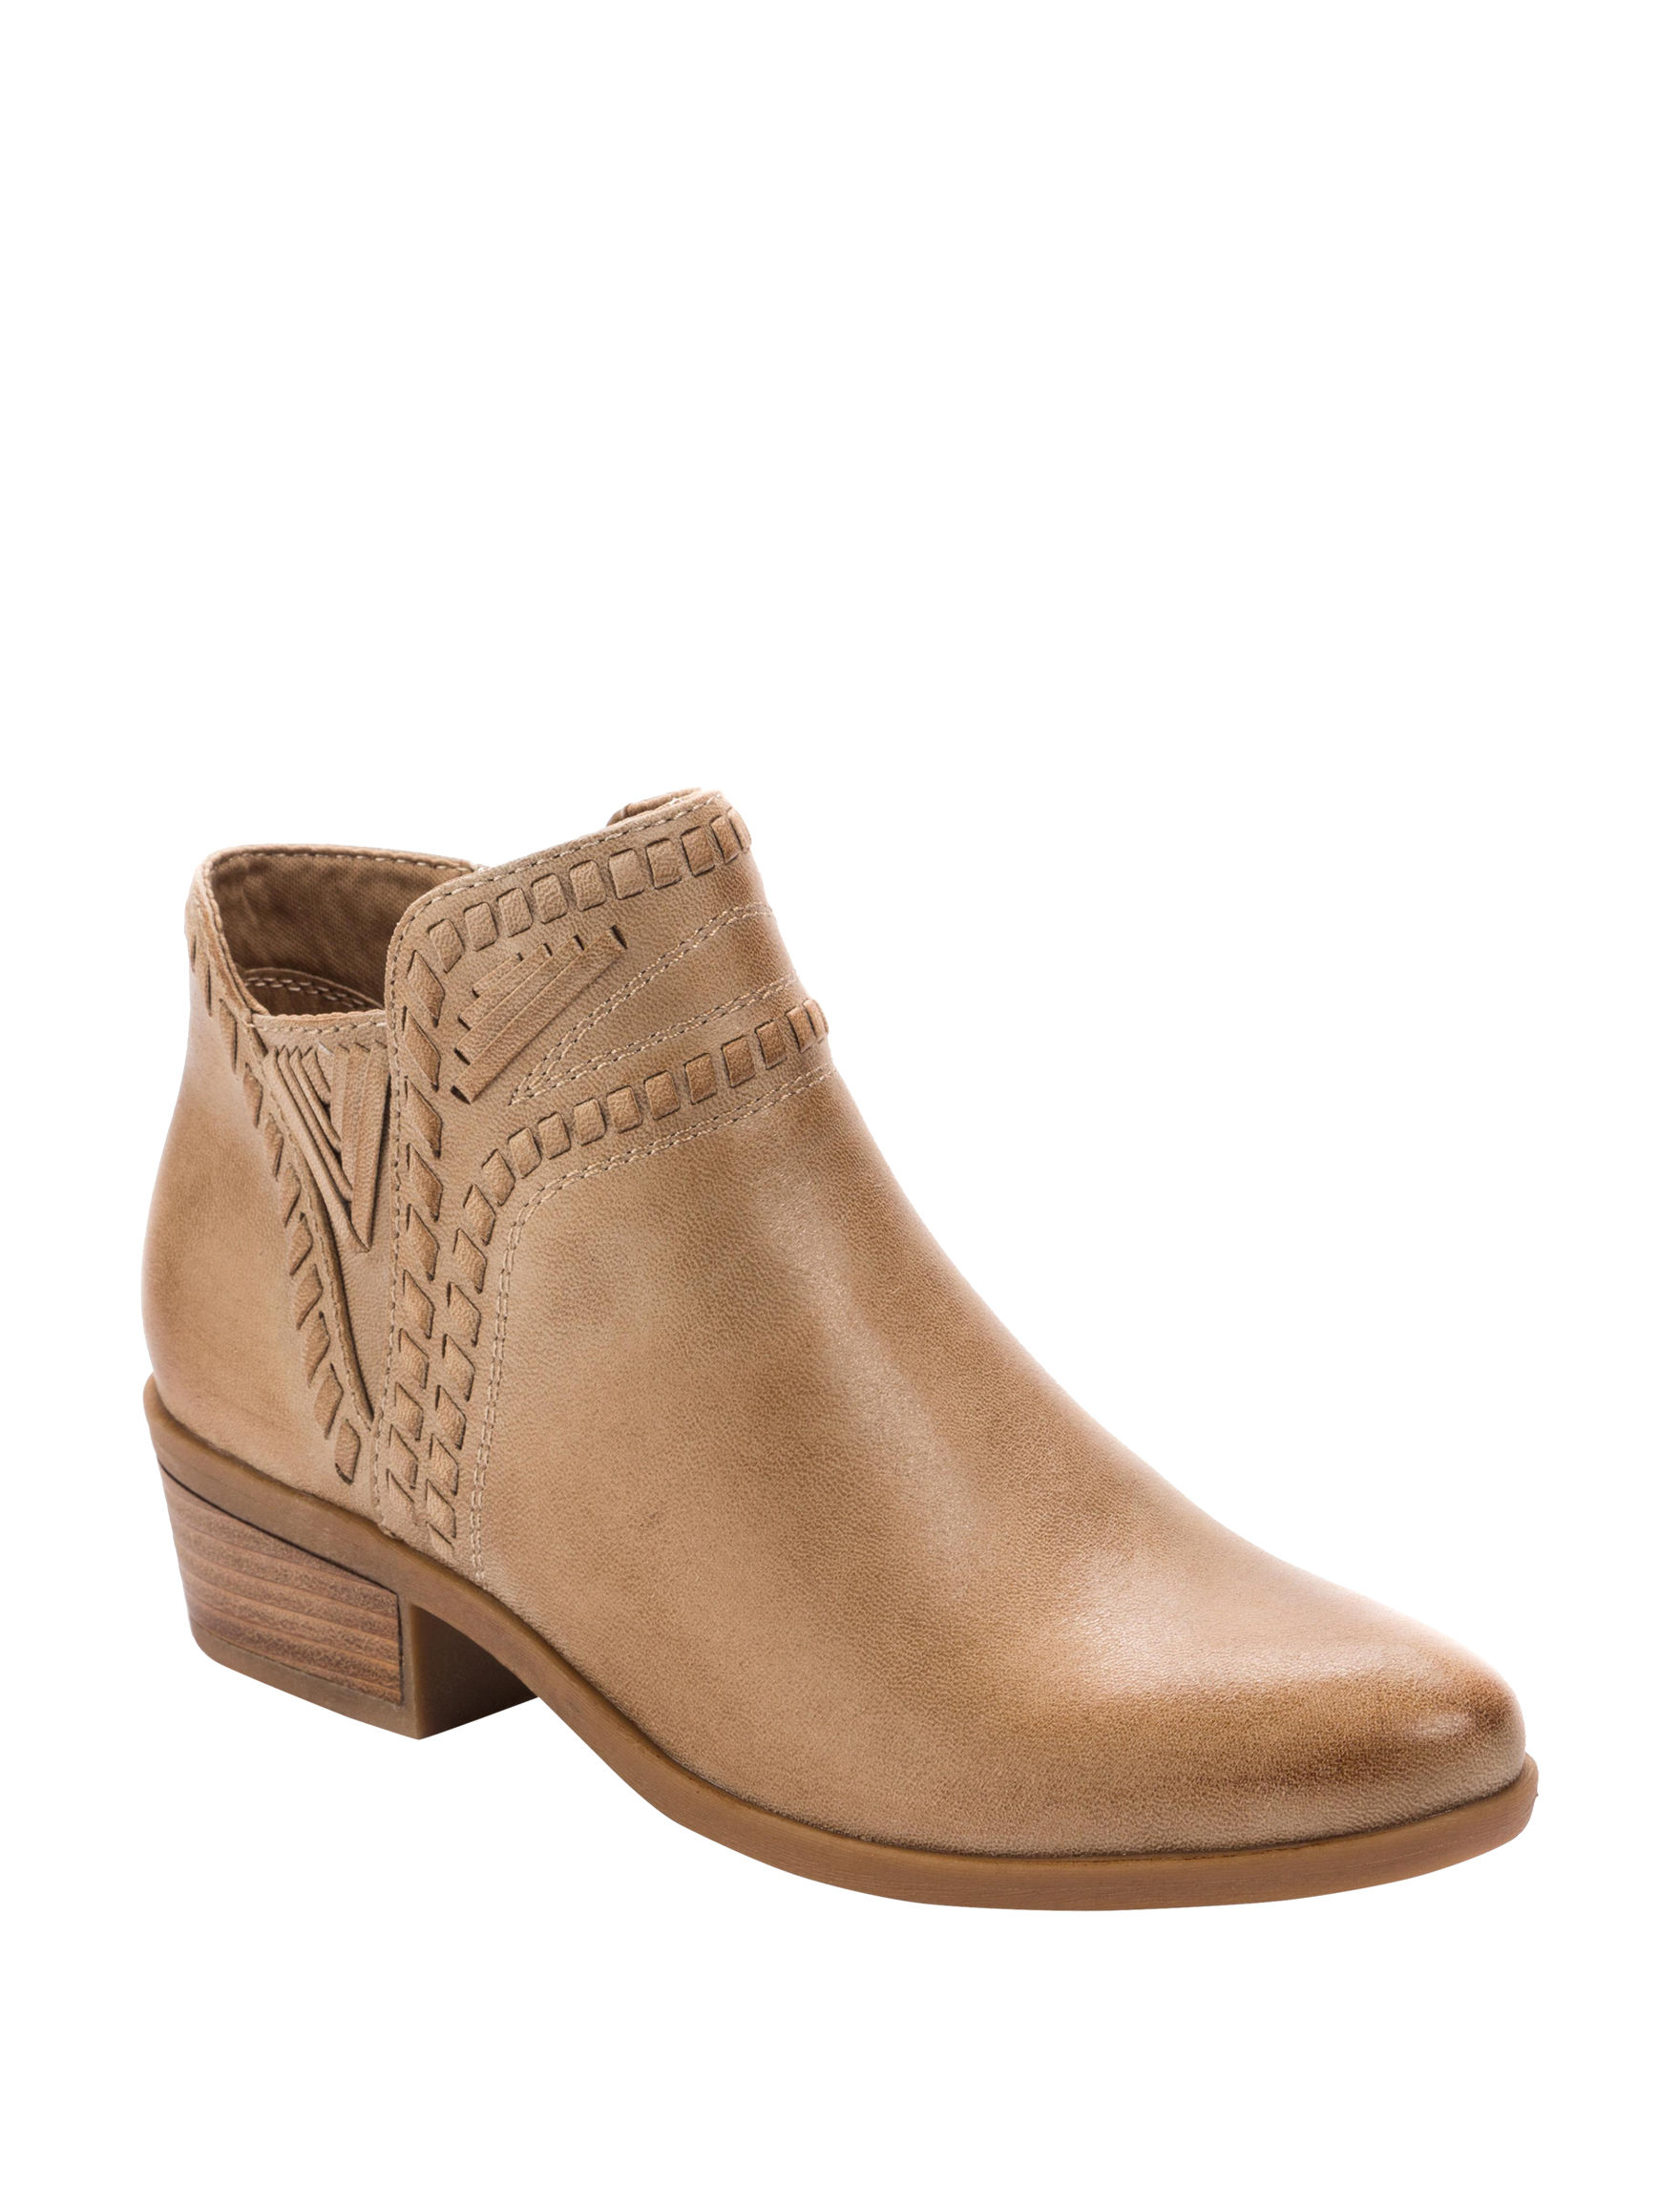 Baretraps Bone Ankle Boots & Booties